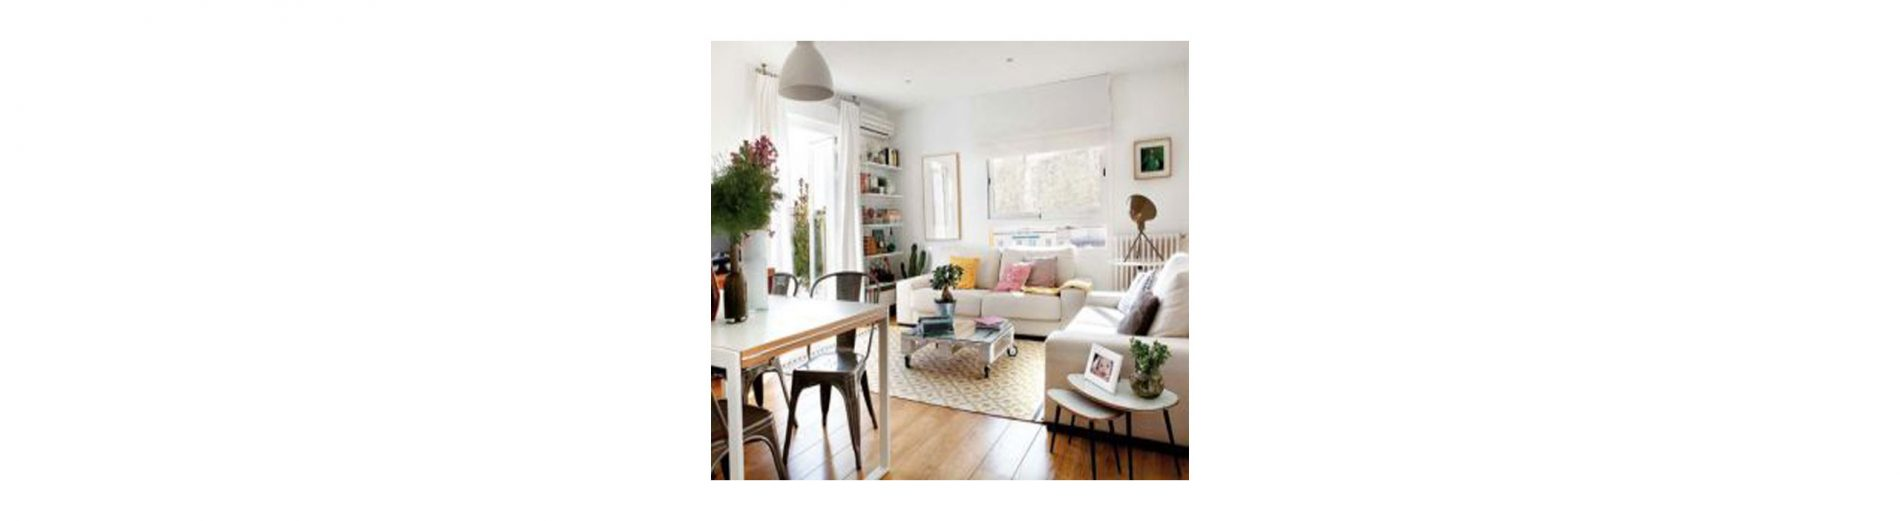 4 Easy Ways to Keep a Small Apartment Organized